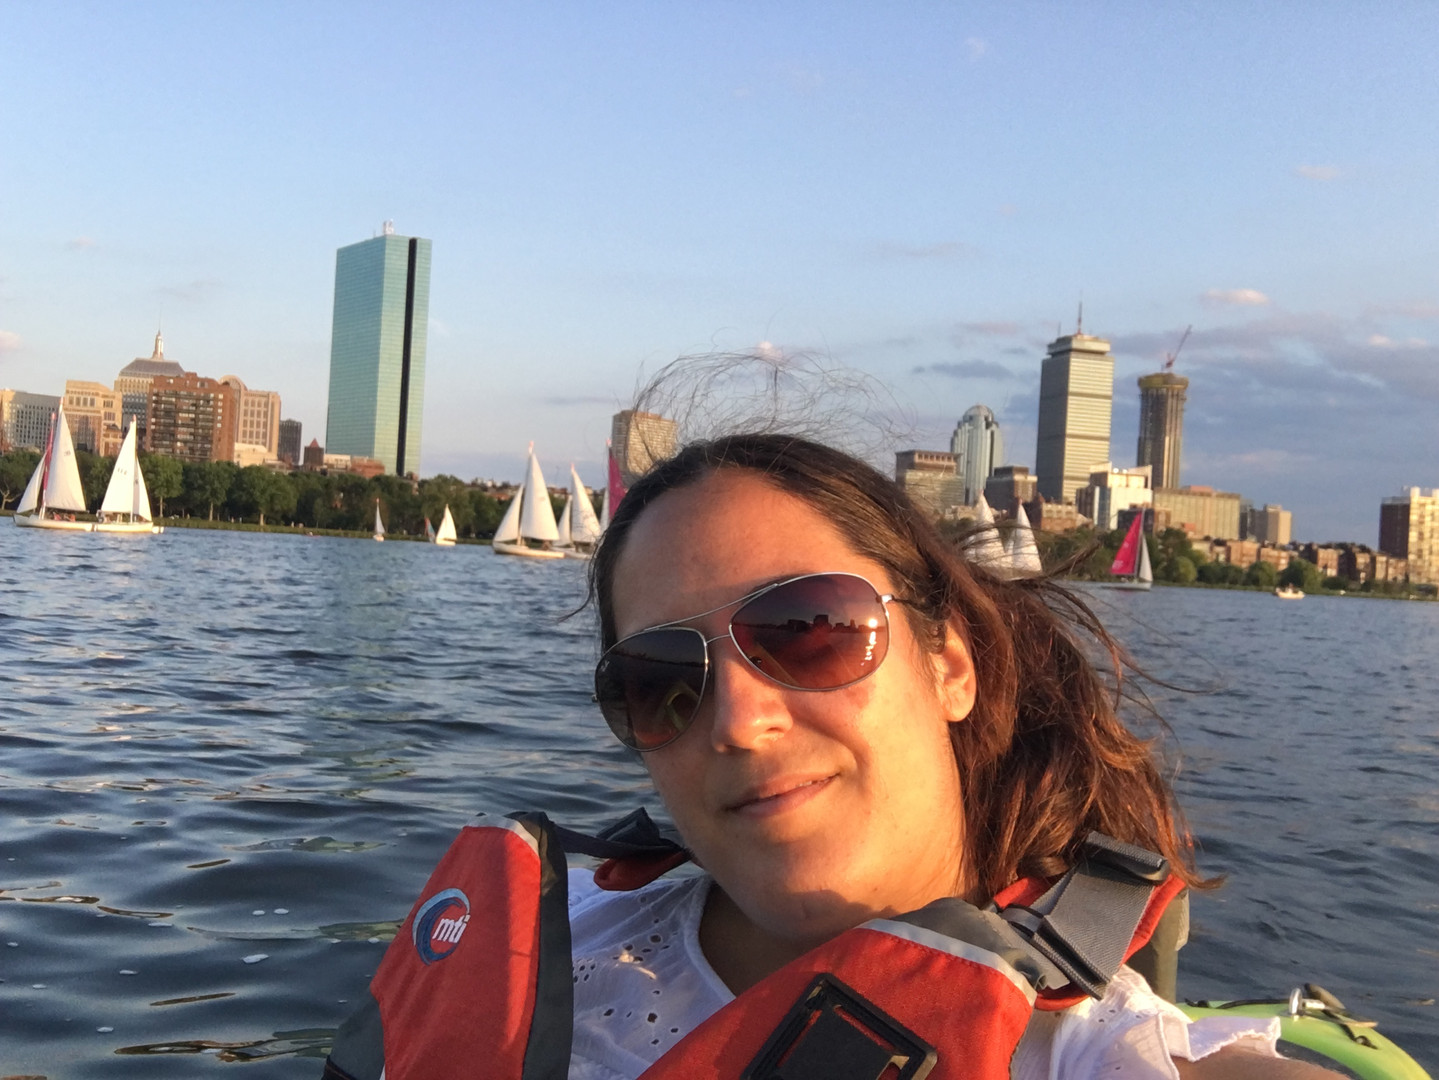 Teri kayaking on the Charles River